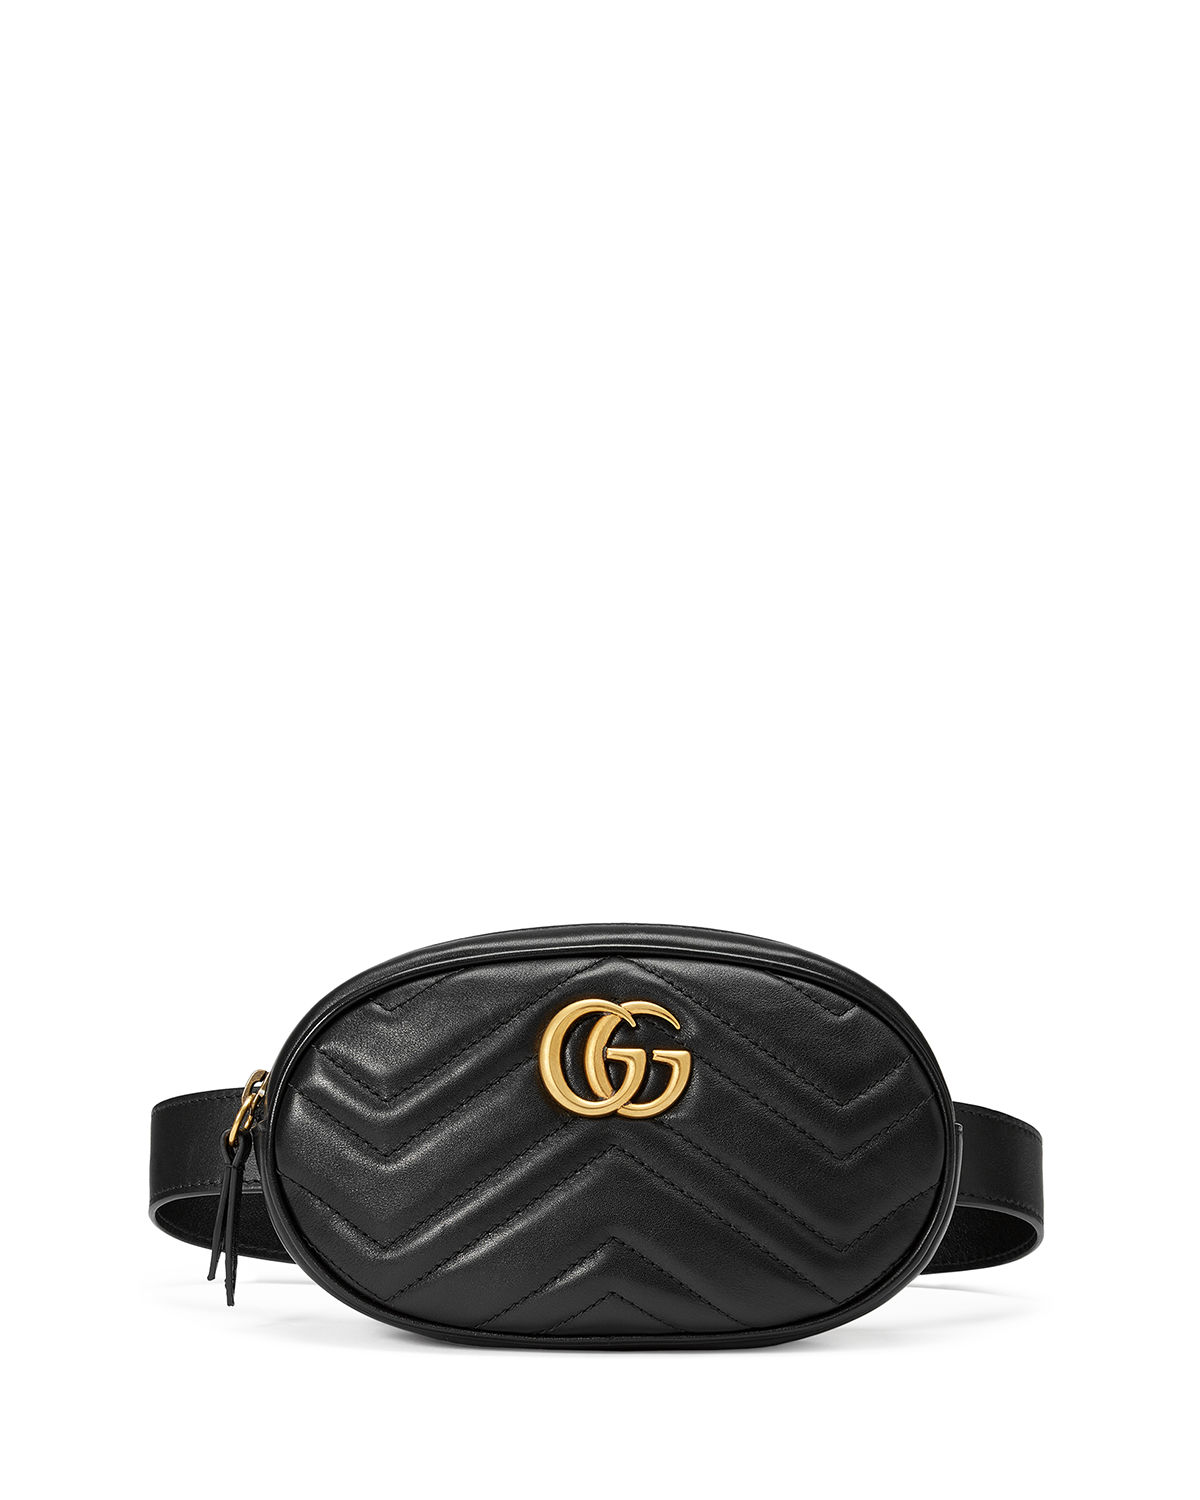 ea584d31ca11 Gucci GG Marmont Small Matelasse Leather Belt Bag | Neiman Marcus